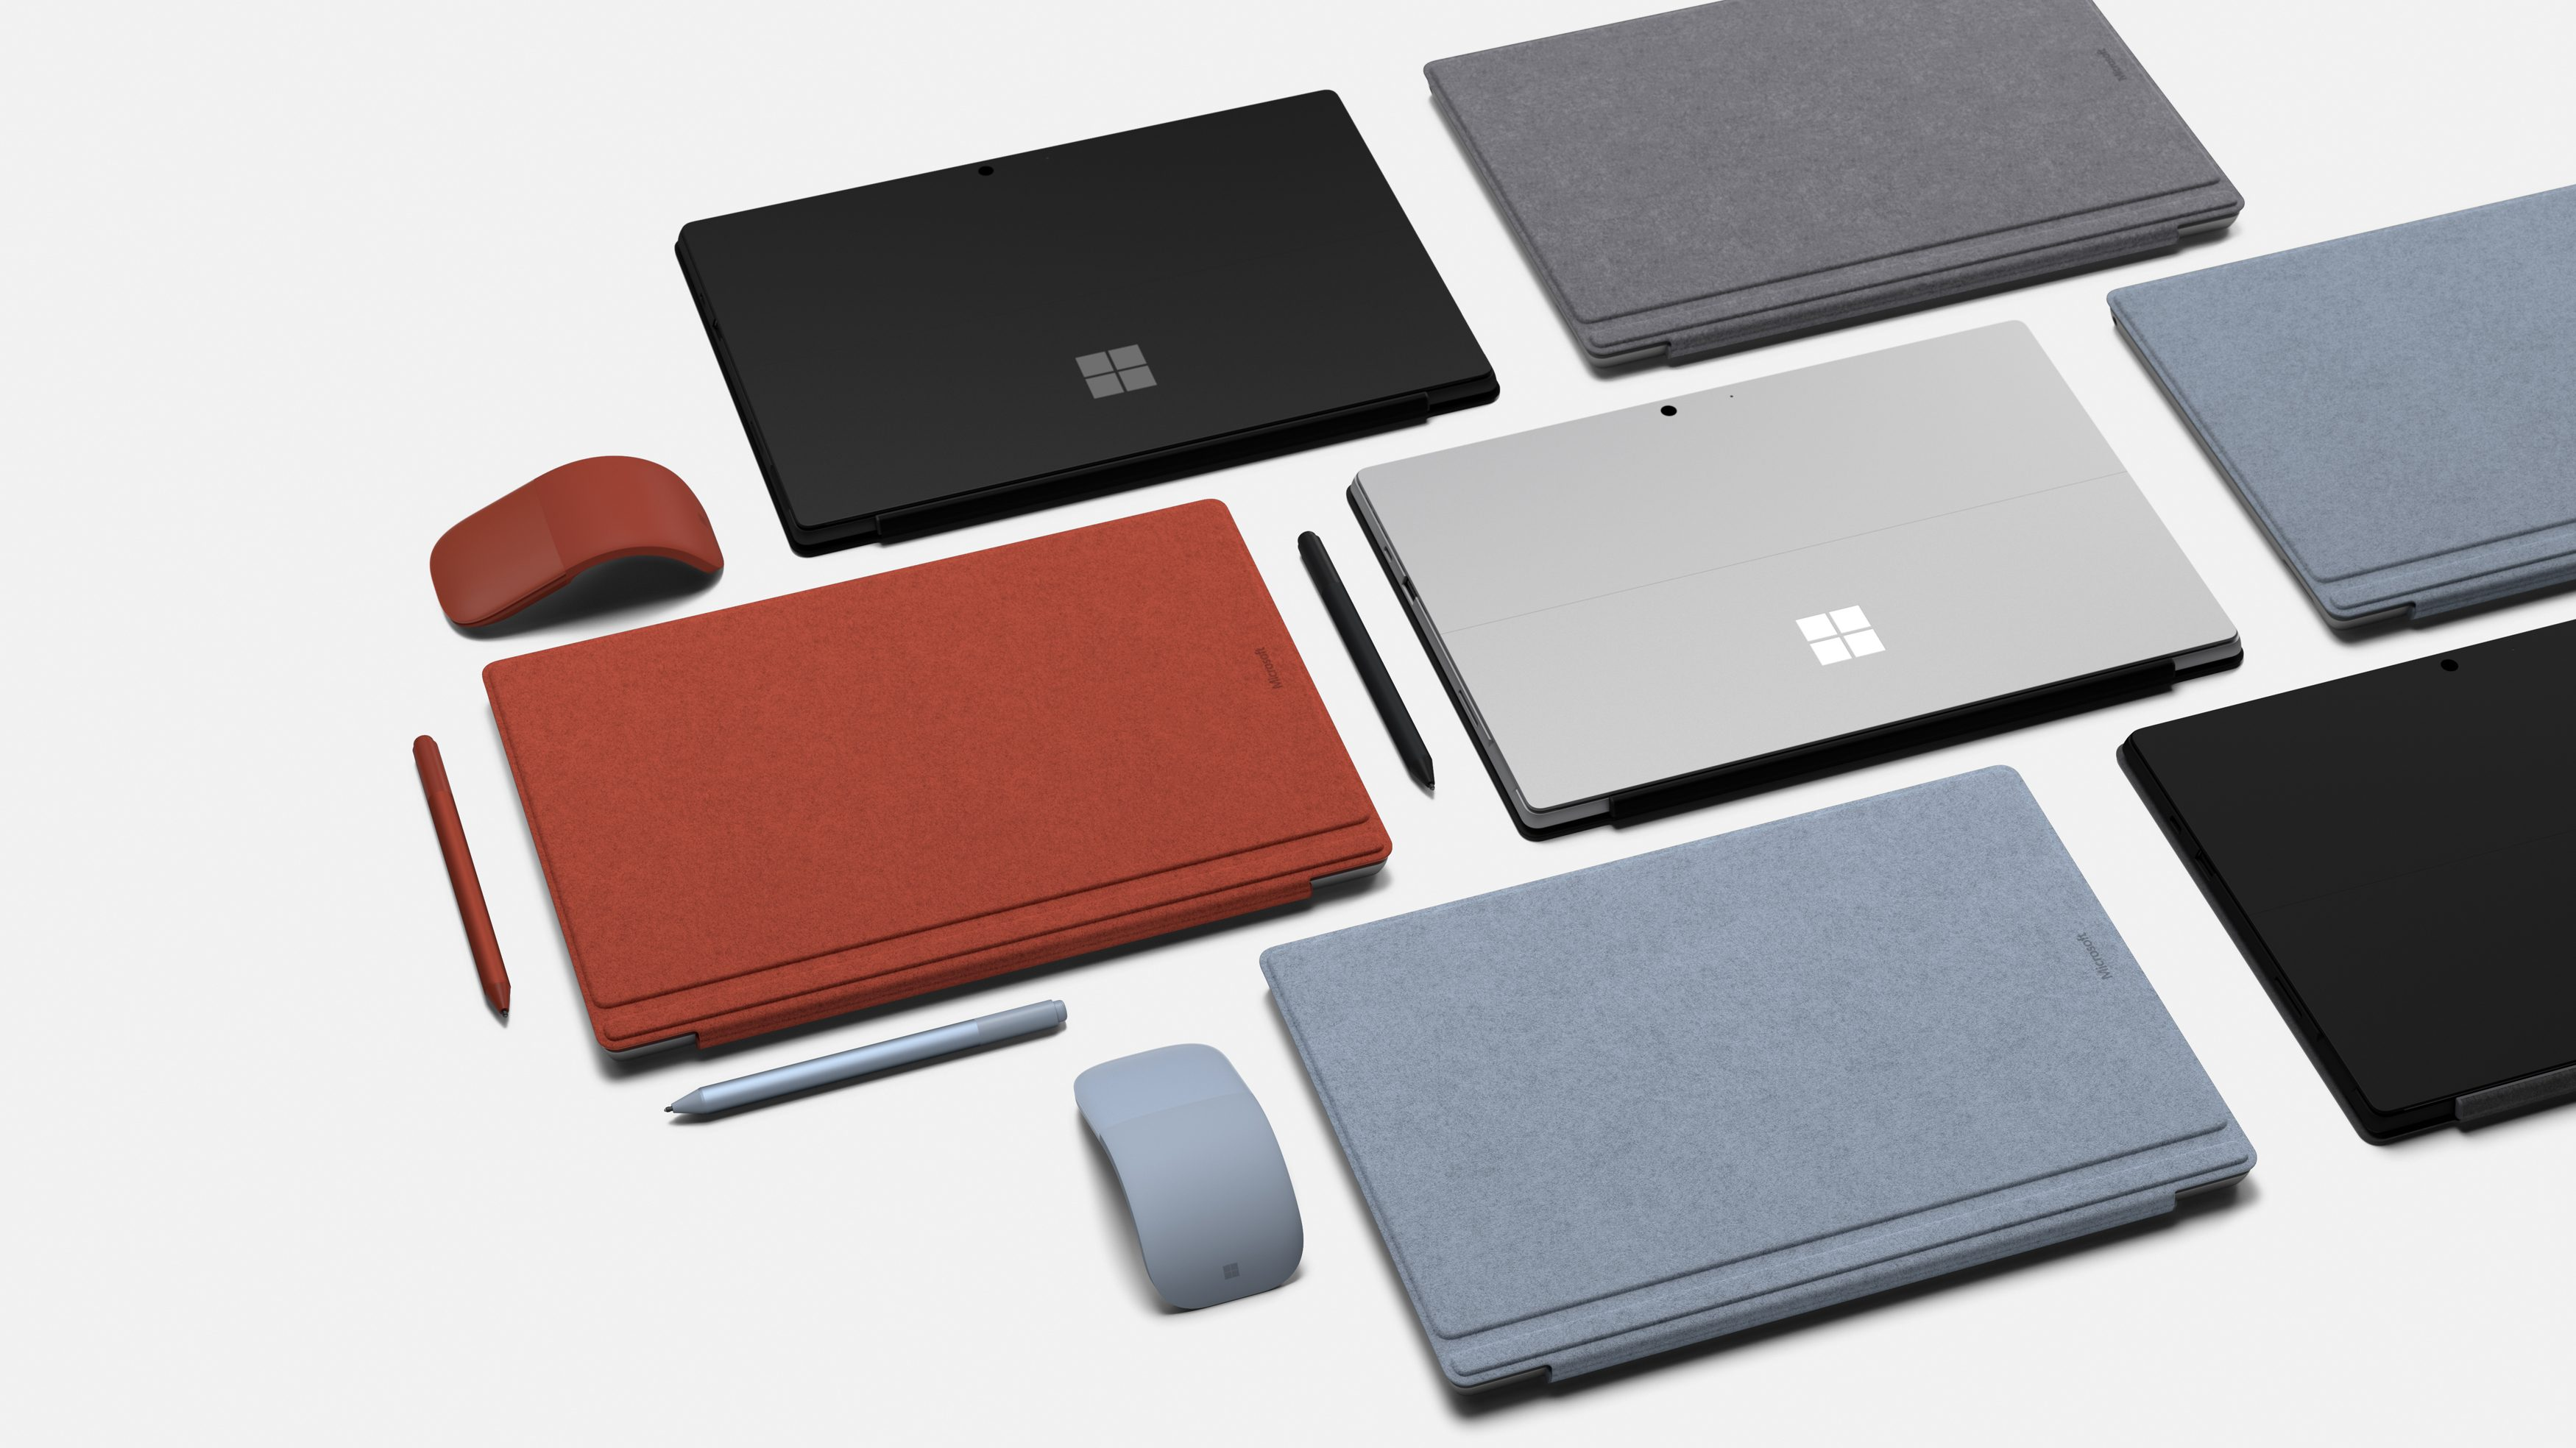 Microsoft's newest Surface devices.